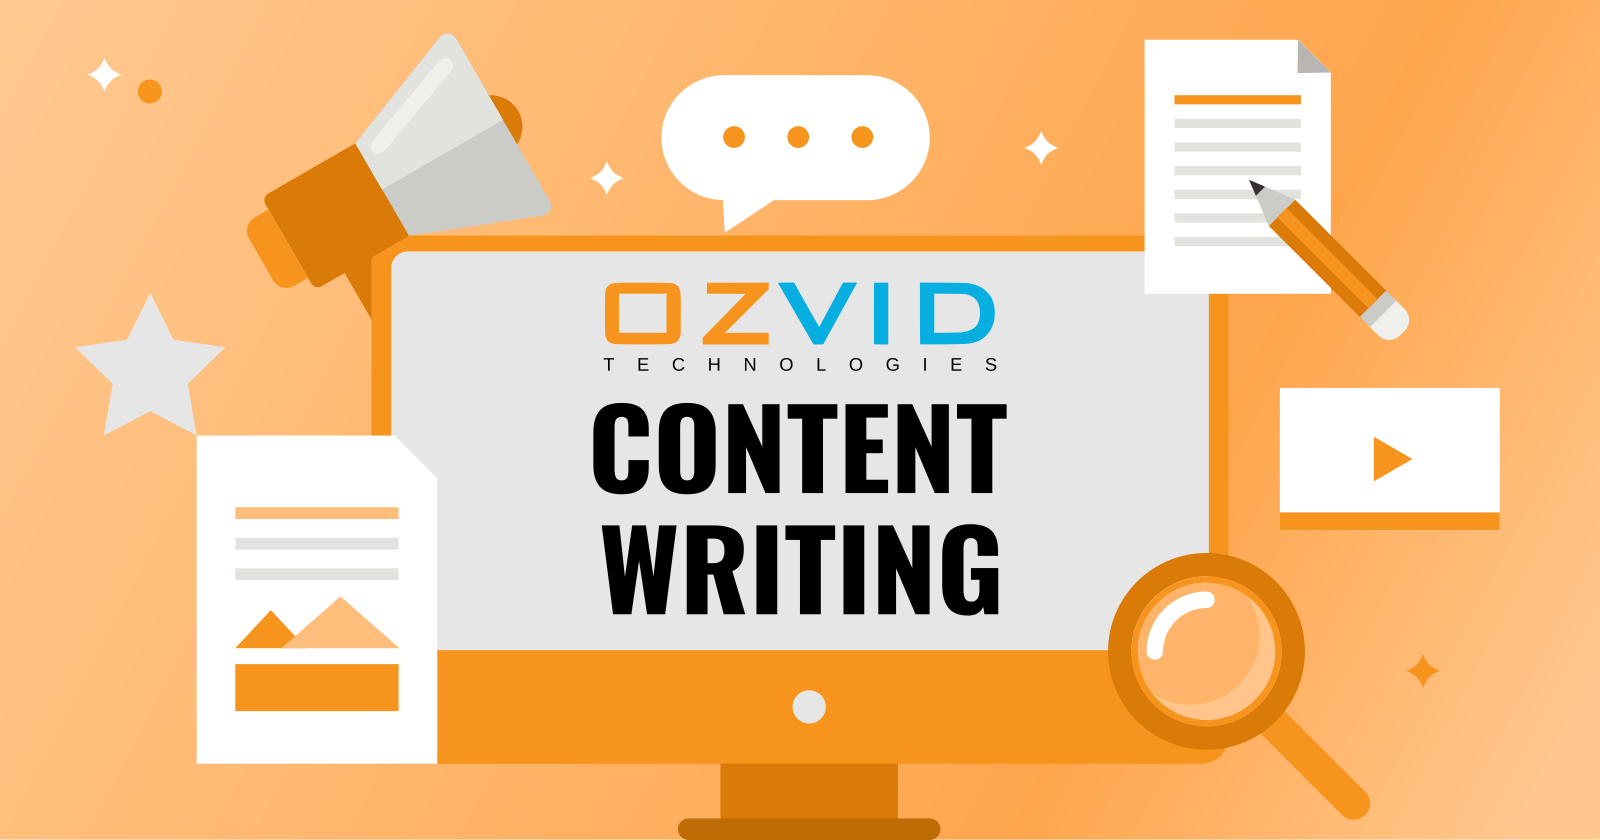 Role of Content Writing in Digital Marketing